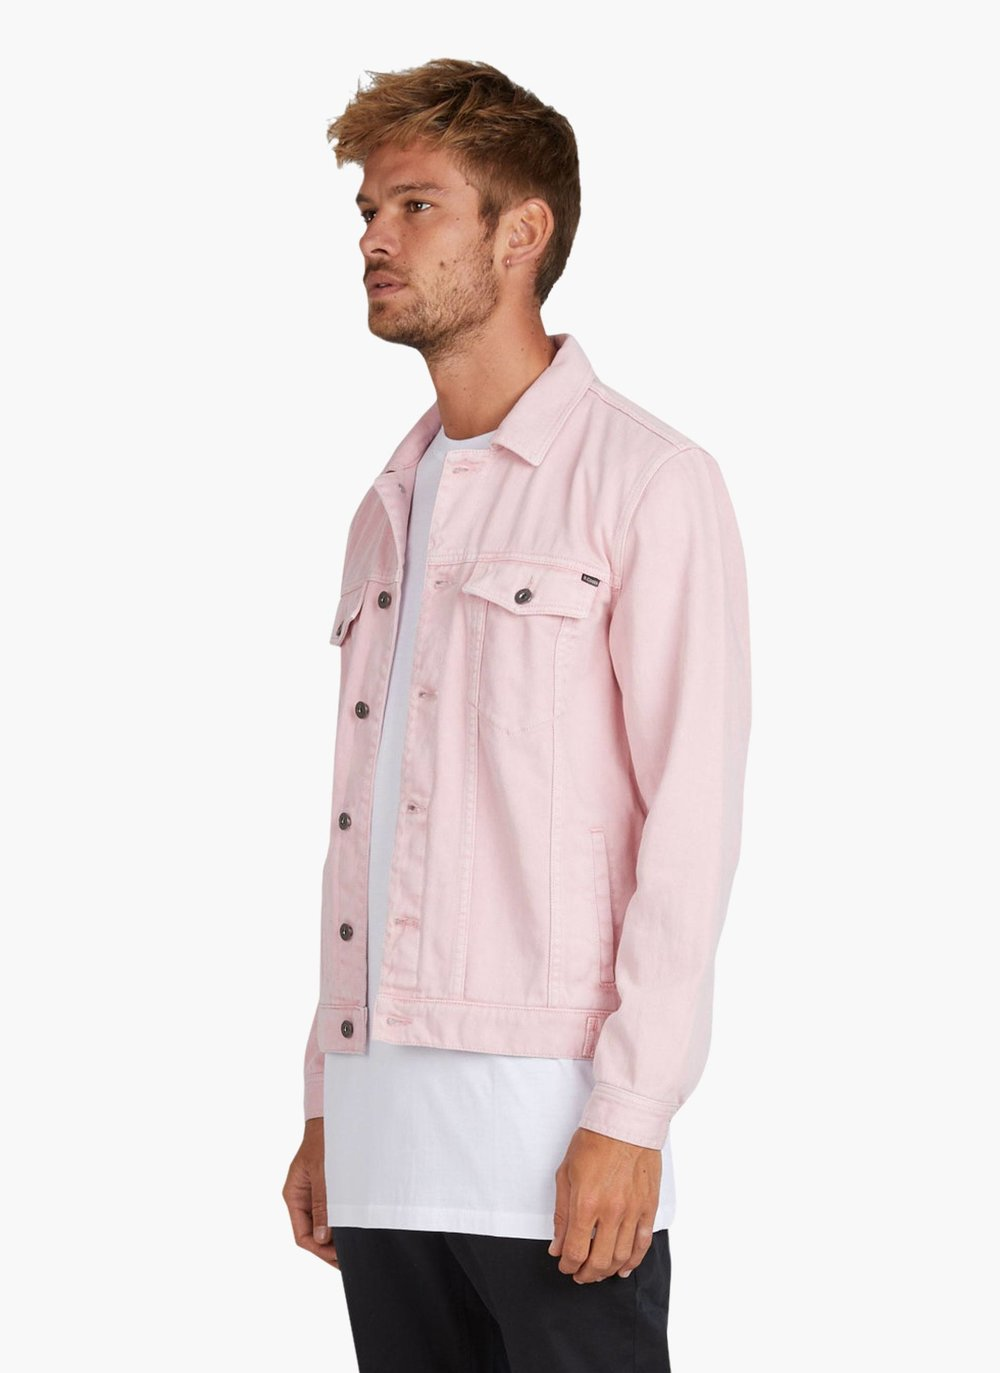 BARNEY-COOLS-B.Rigid-Jacket-Pink-02.jpg